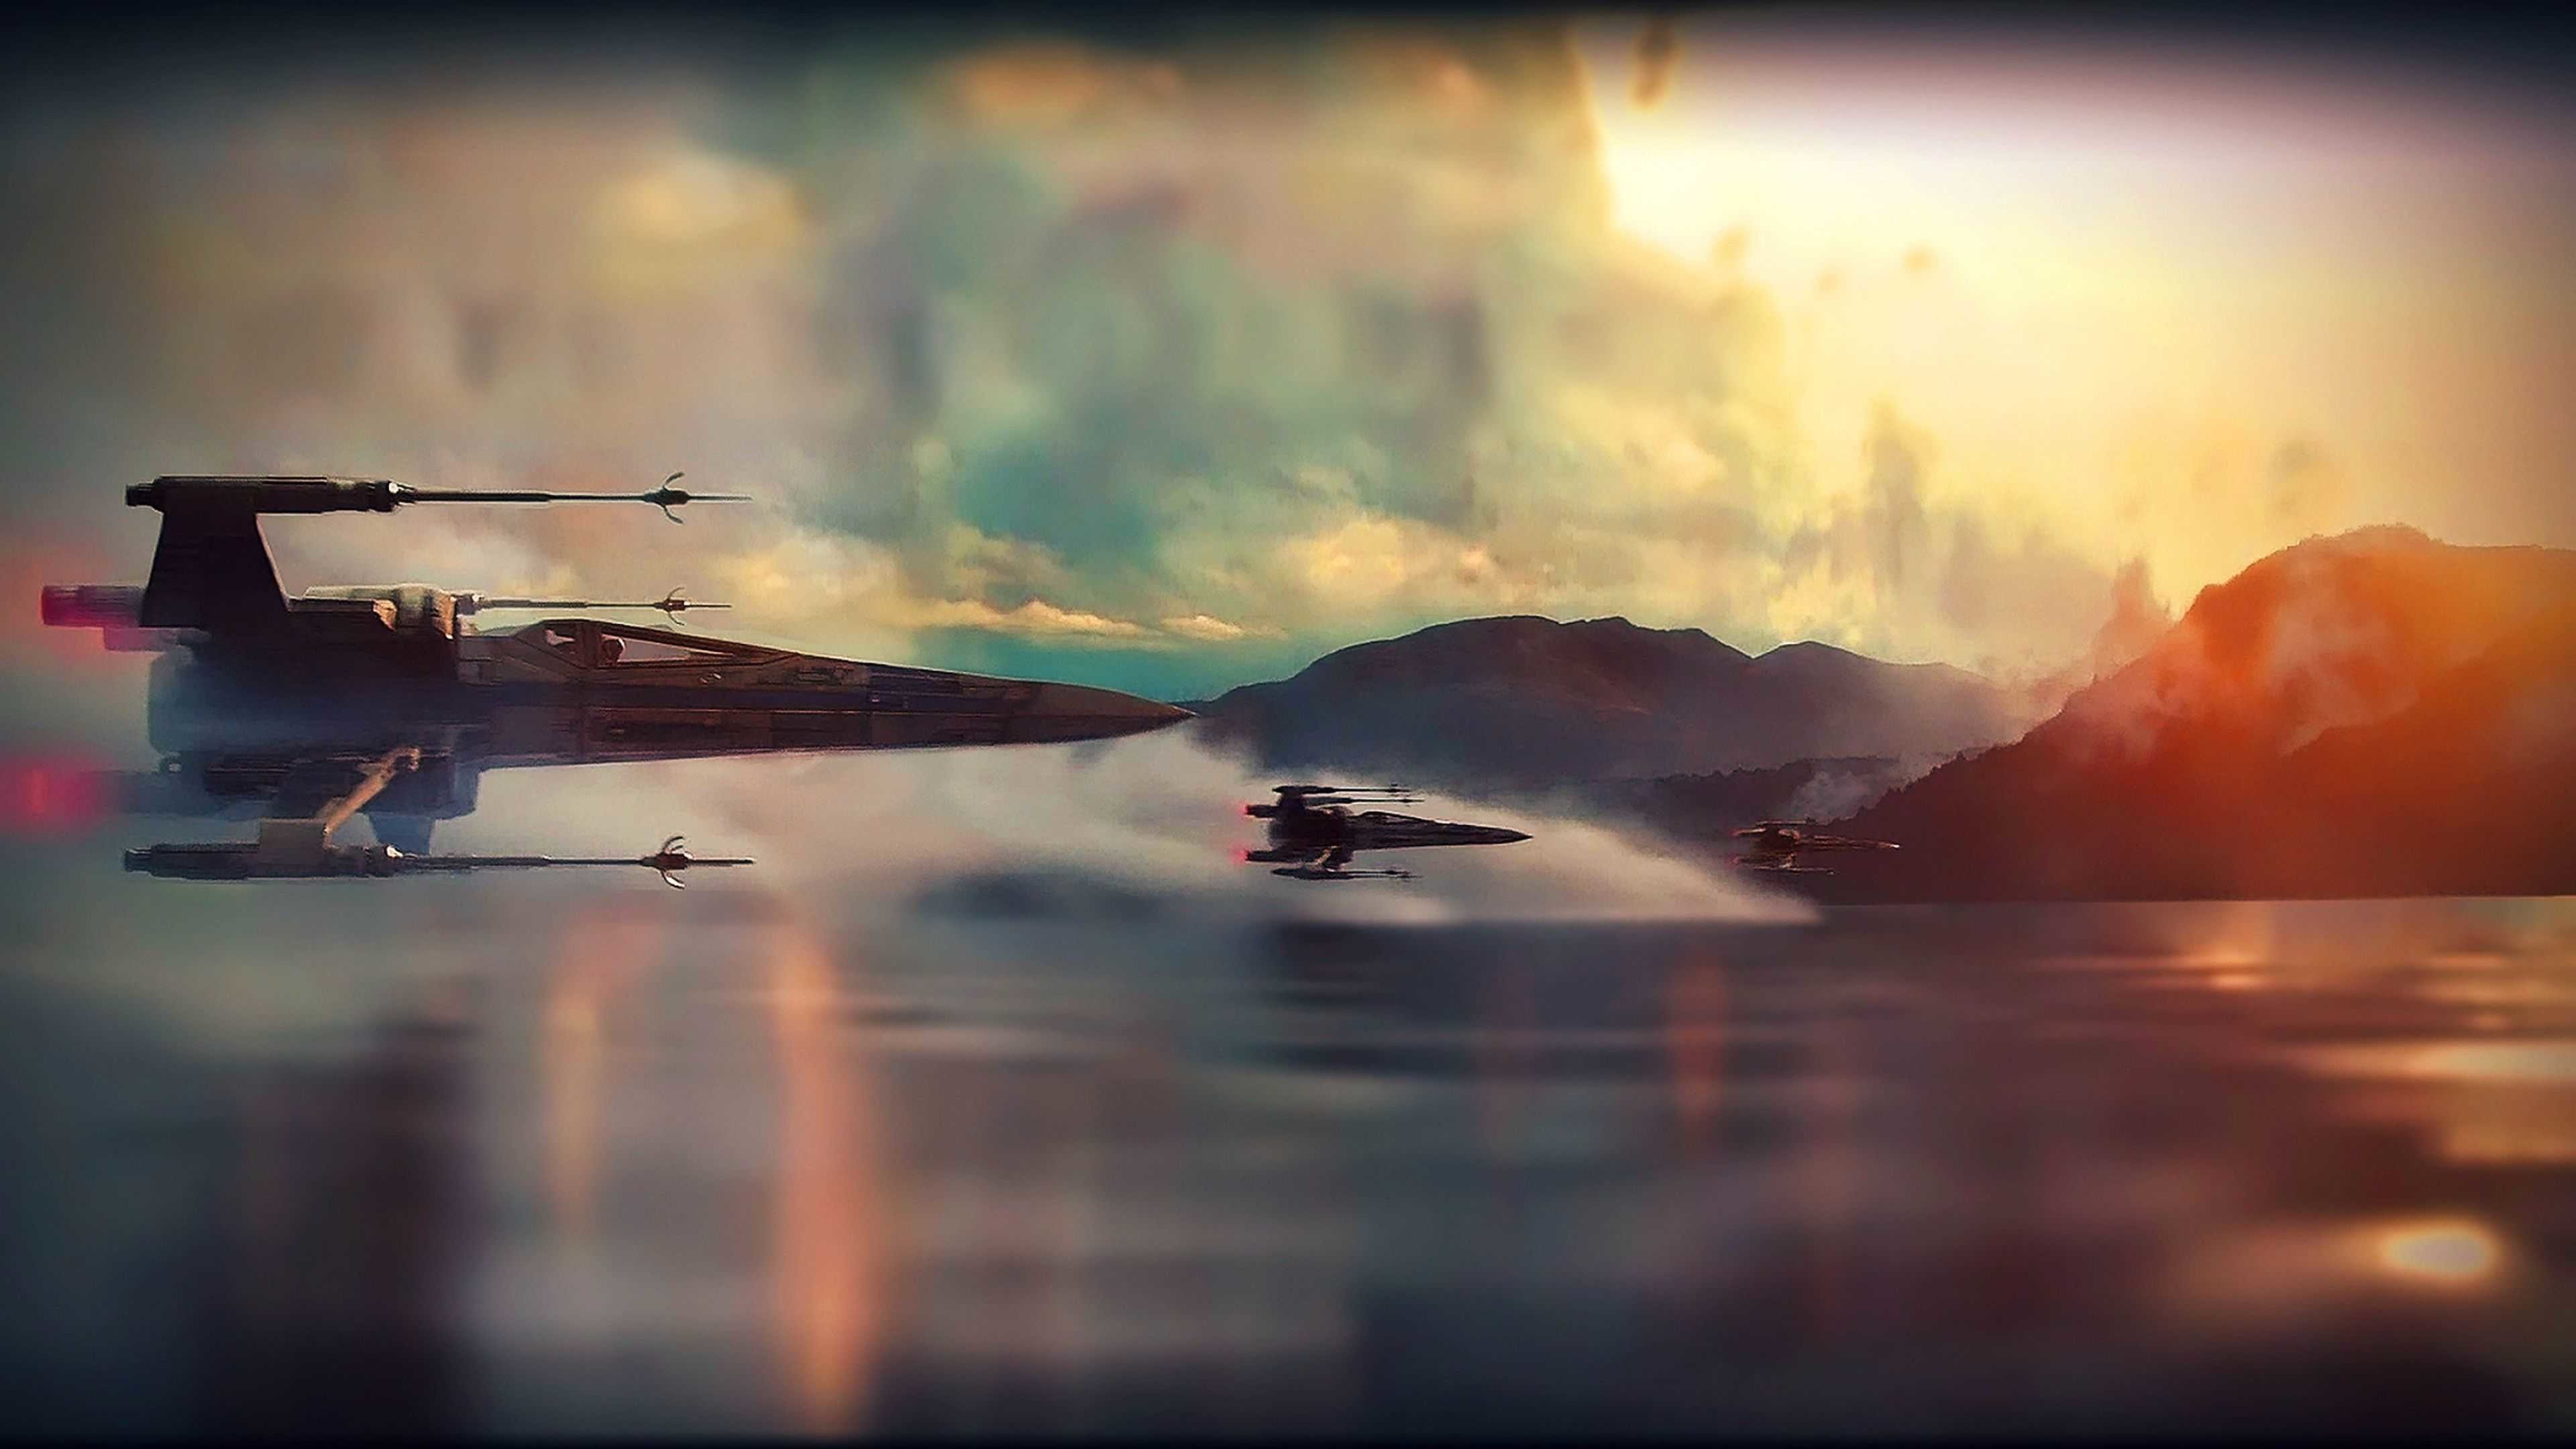 Star Wars Landscape Wallpaper 70 Images